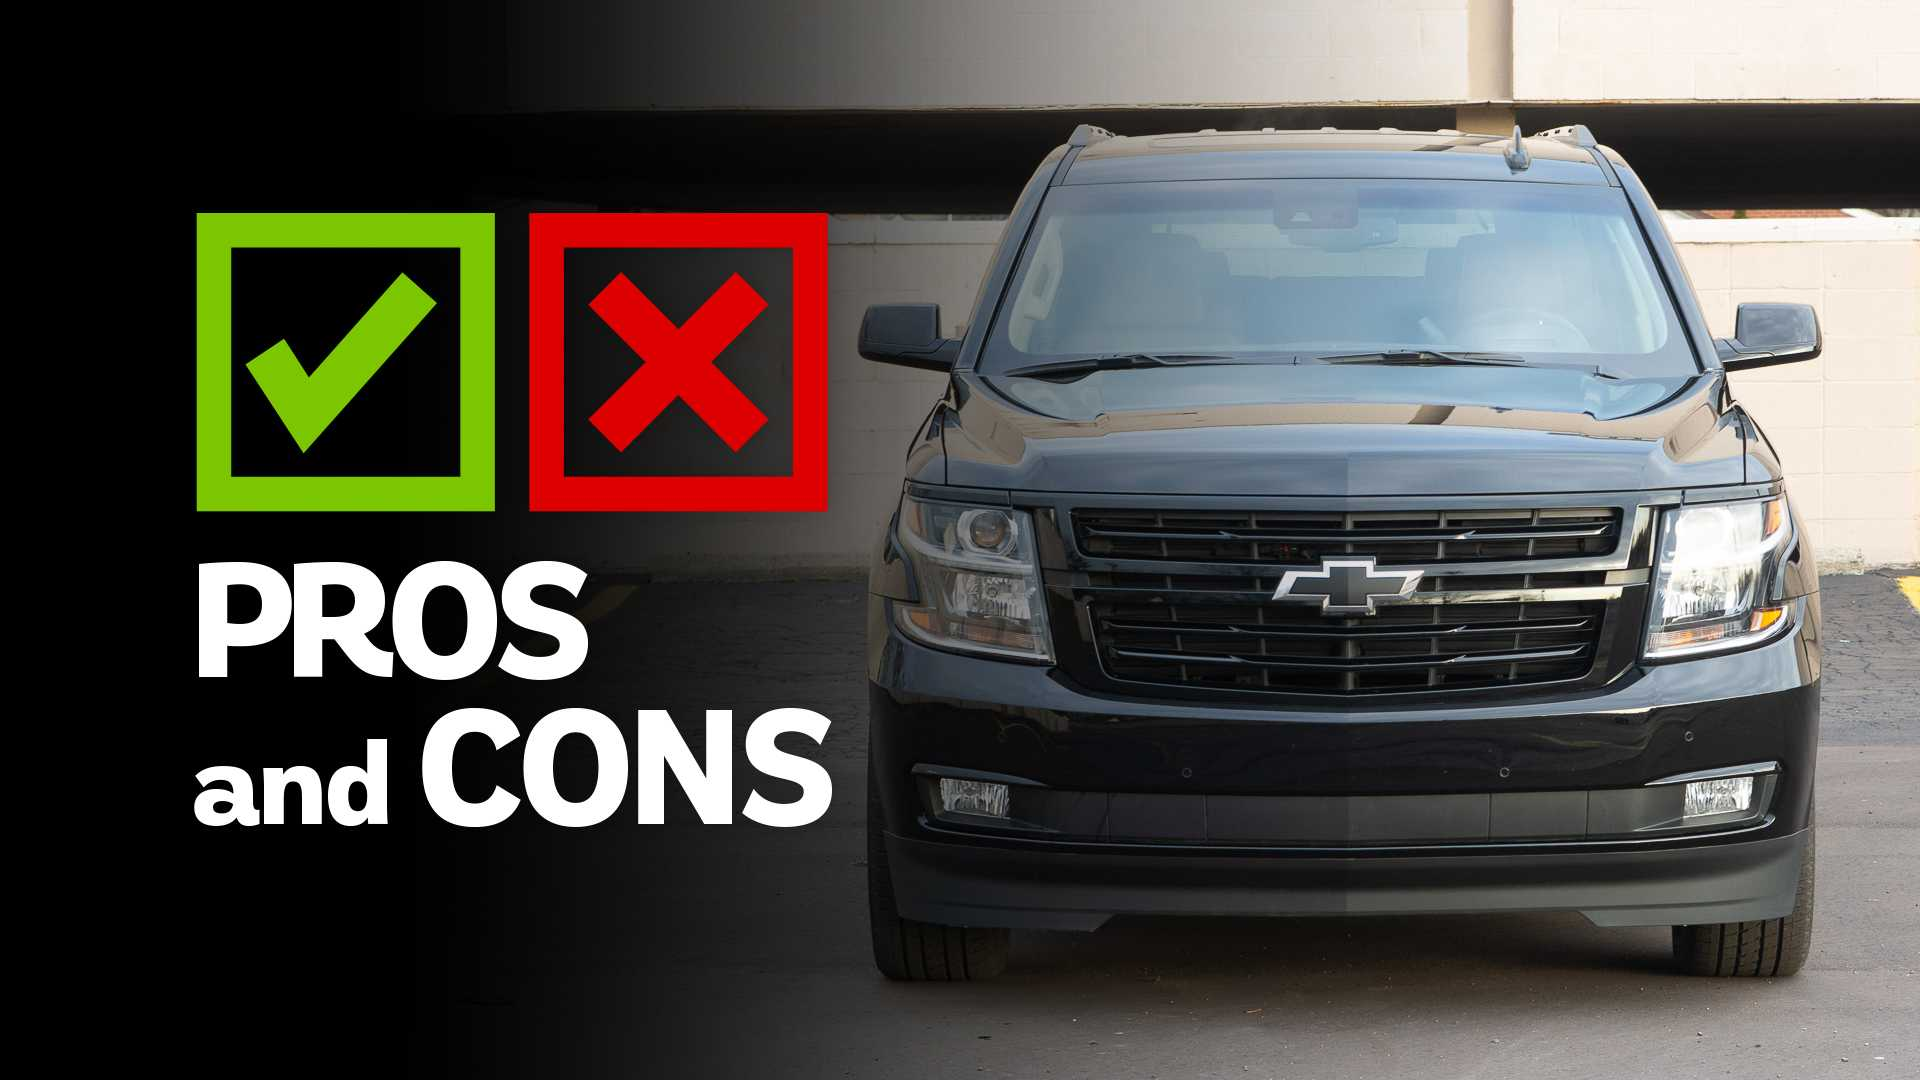 Nissan Armada Towing Capacity >> 2019 Chevrolet Suburban RST: Pros and Cons